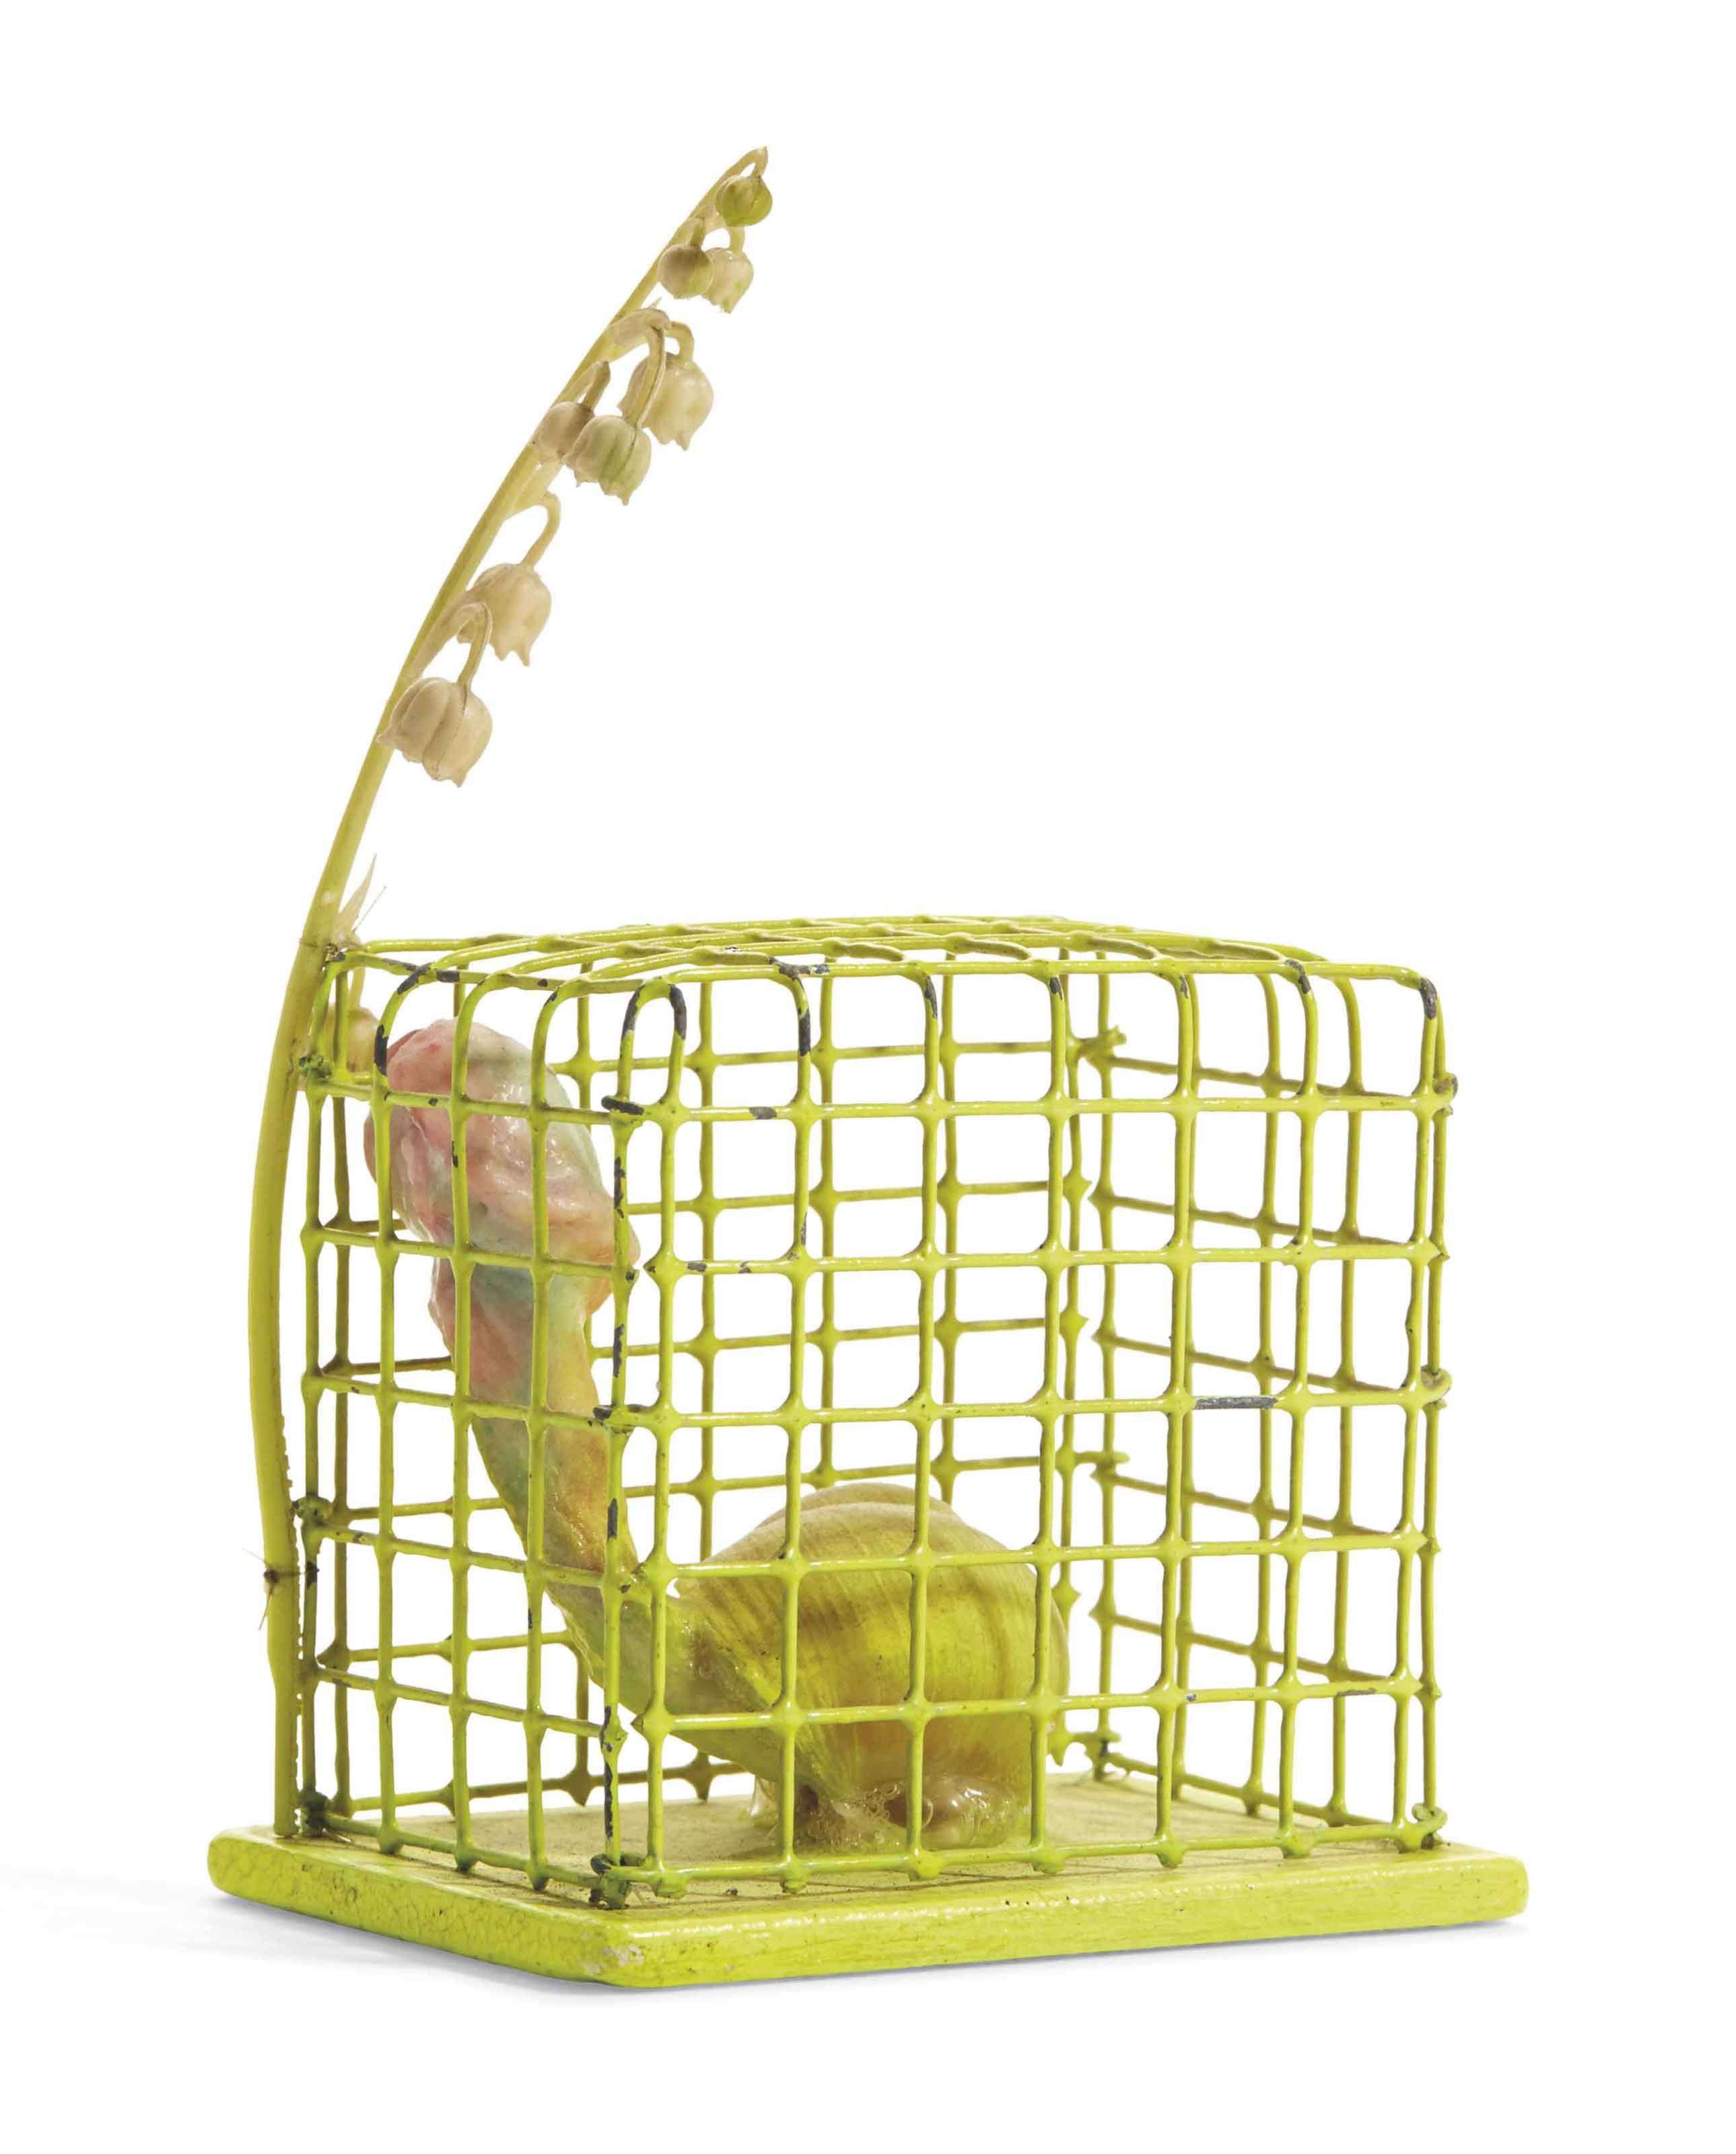 Cage Jaune (Yellow Cage)